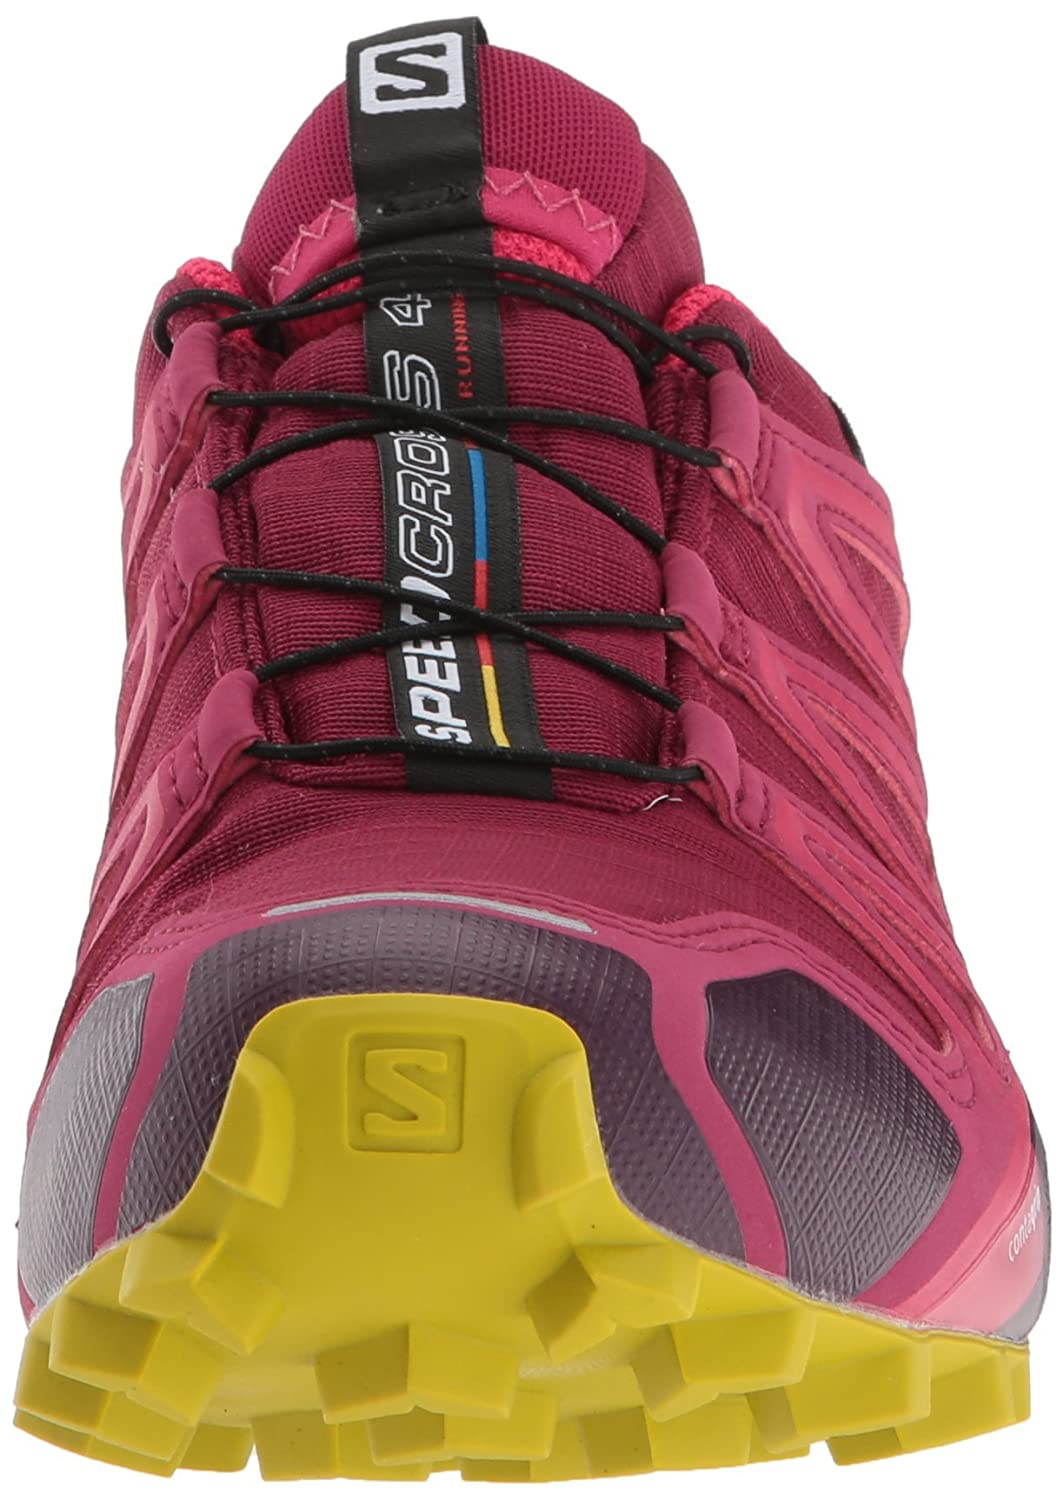 De Para Salomon Gtx Calzado Speedcross Trail Impermeable Running 4 x6prqI6